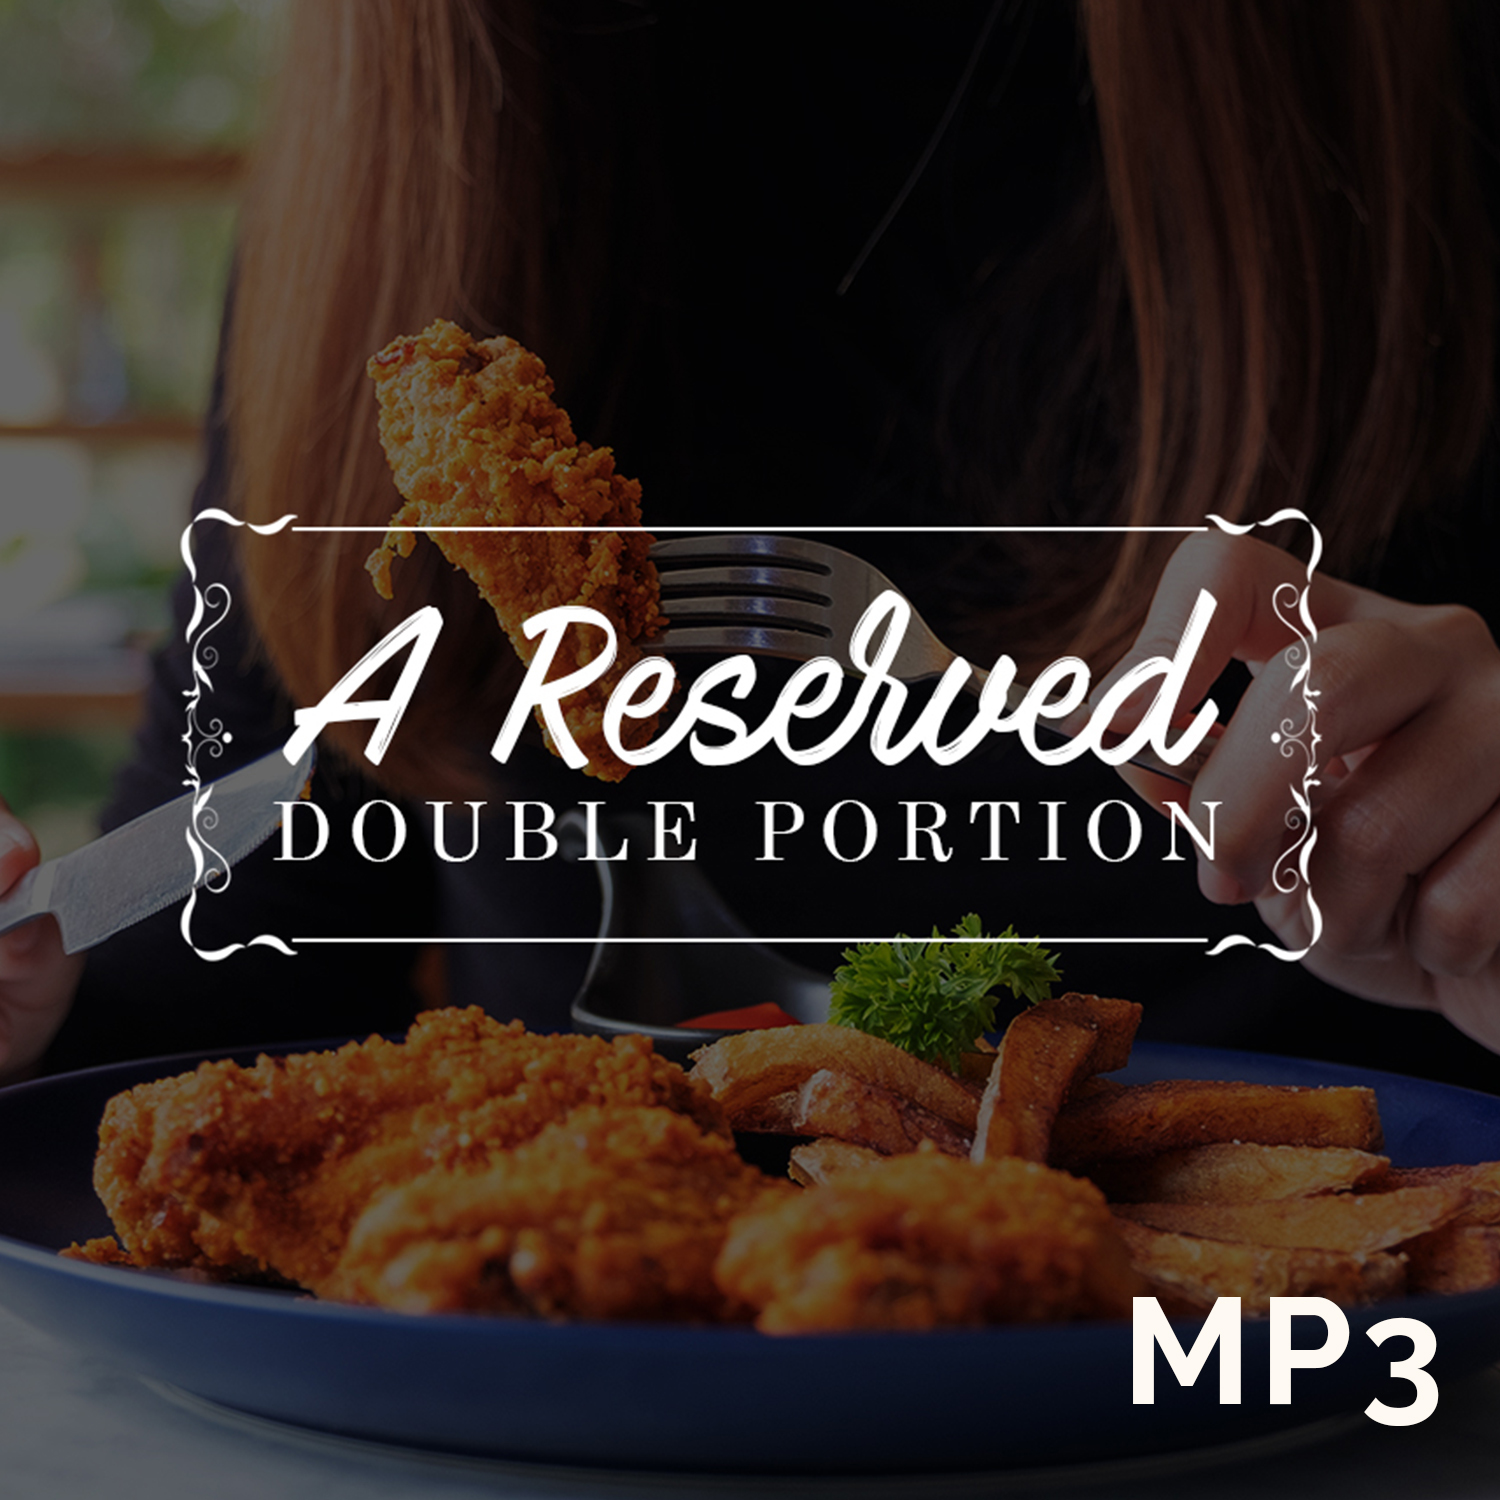 A Reserved Double Portion 00020